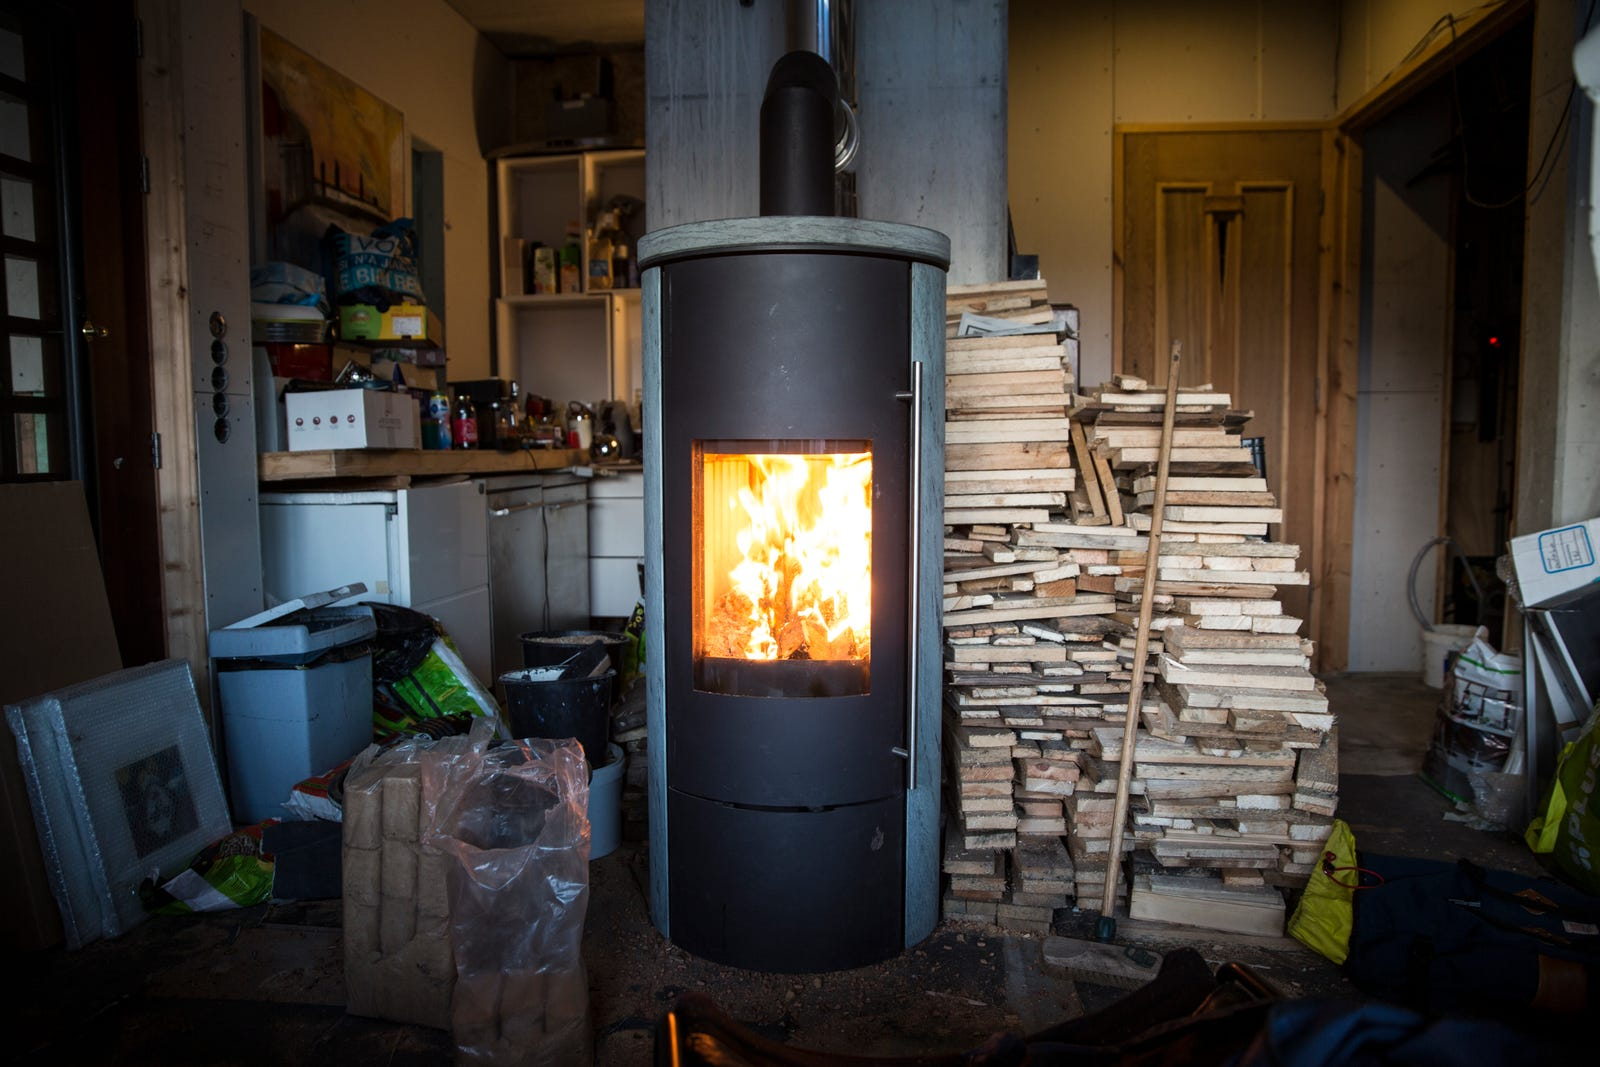 Frank's wood stove and the reclaimed wood he uses as fuel (Photo: Adam Clark Estes)